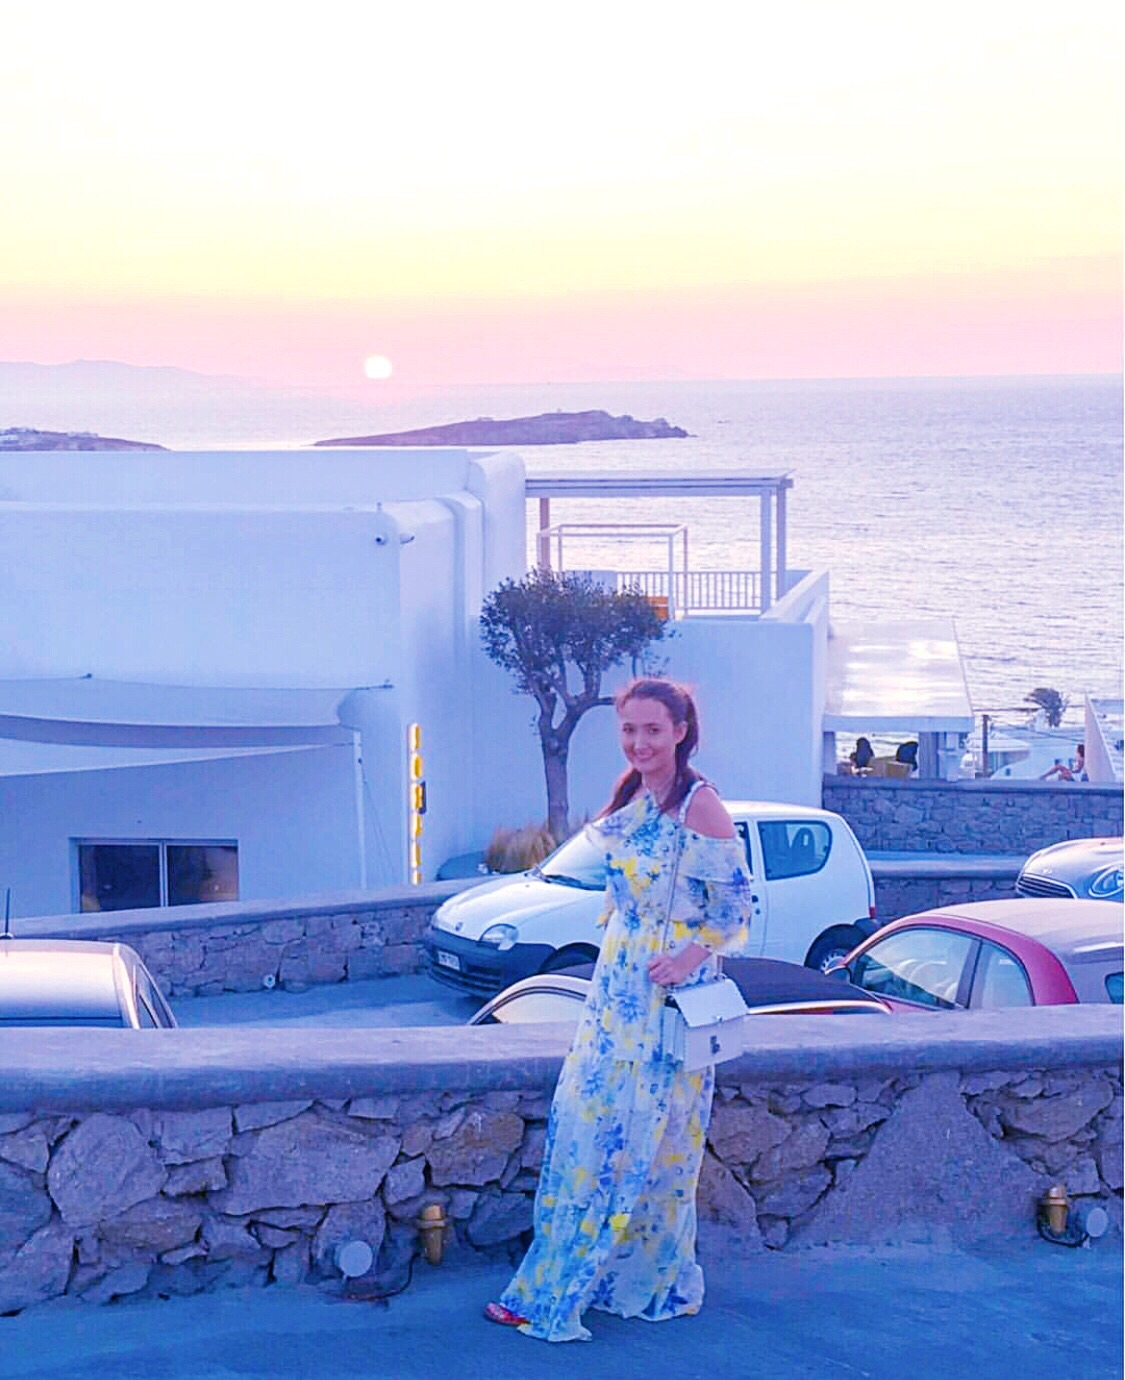 Mykonos Greece: What to wear, eat, & hotels to stay, mykonos greece, mykonos greece fashion, mykonos greece travel guide, mykonos greece hotels, mykonos greece food, what to do in mykonos